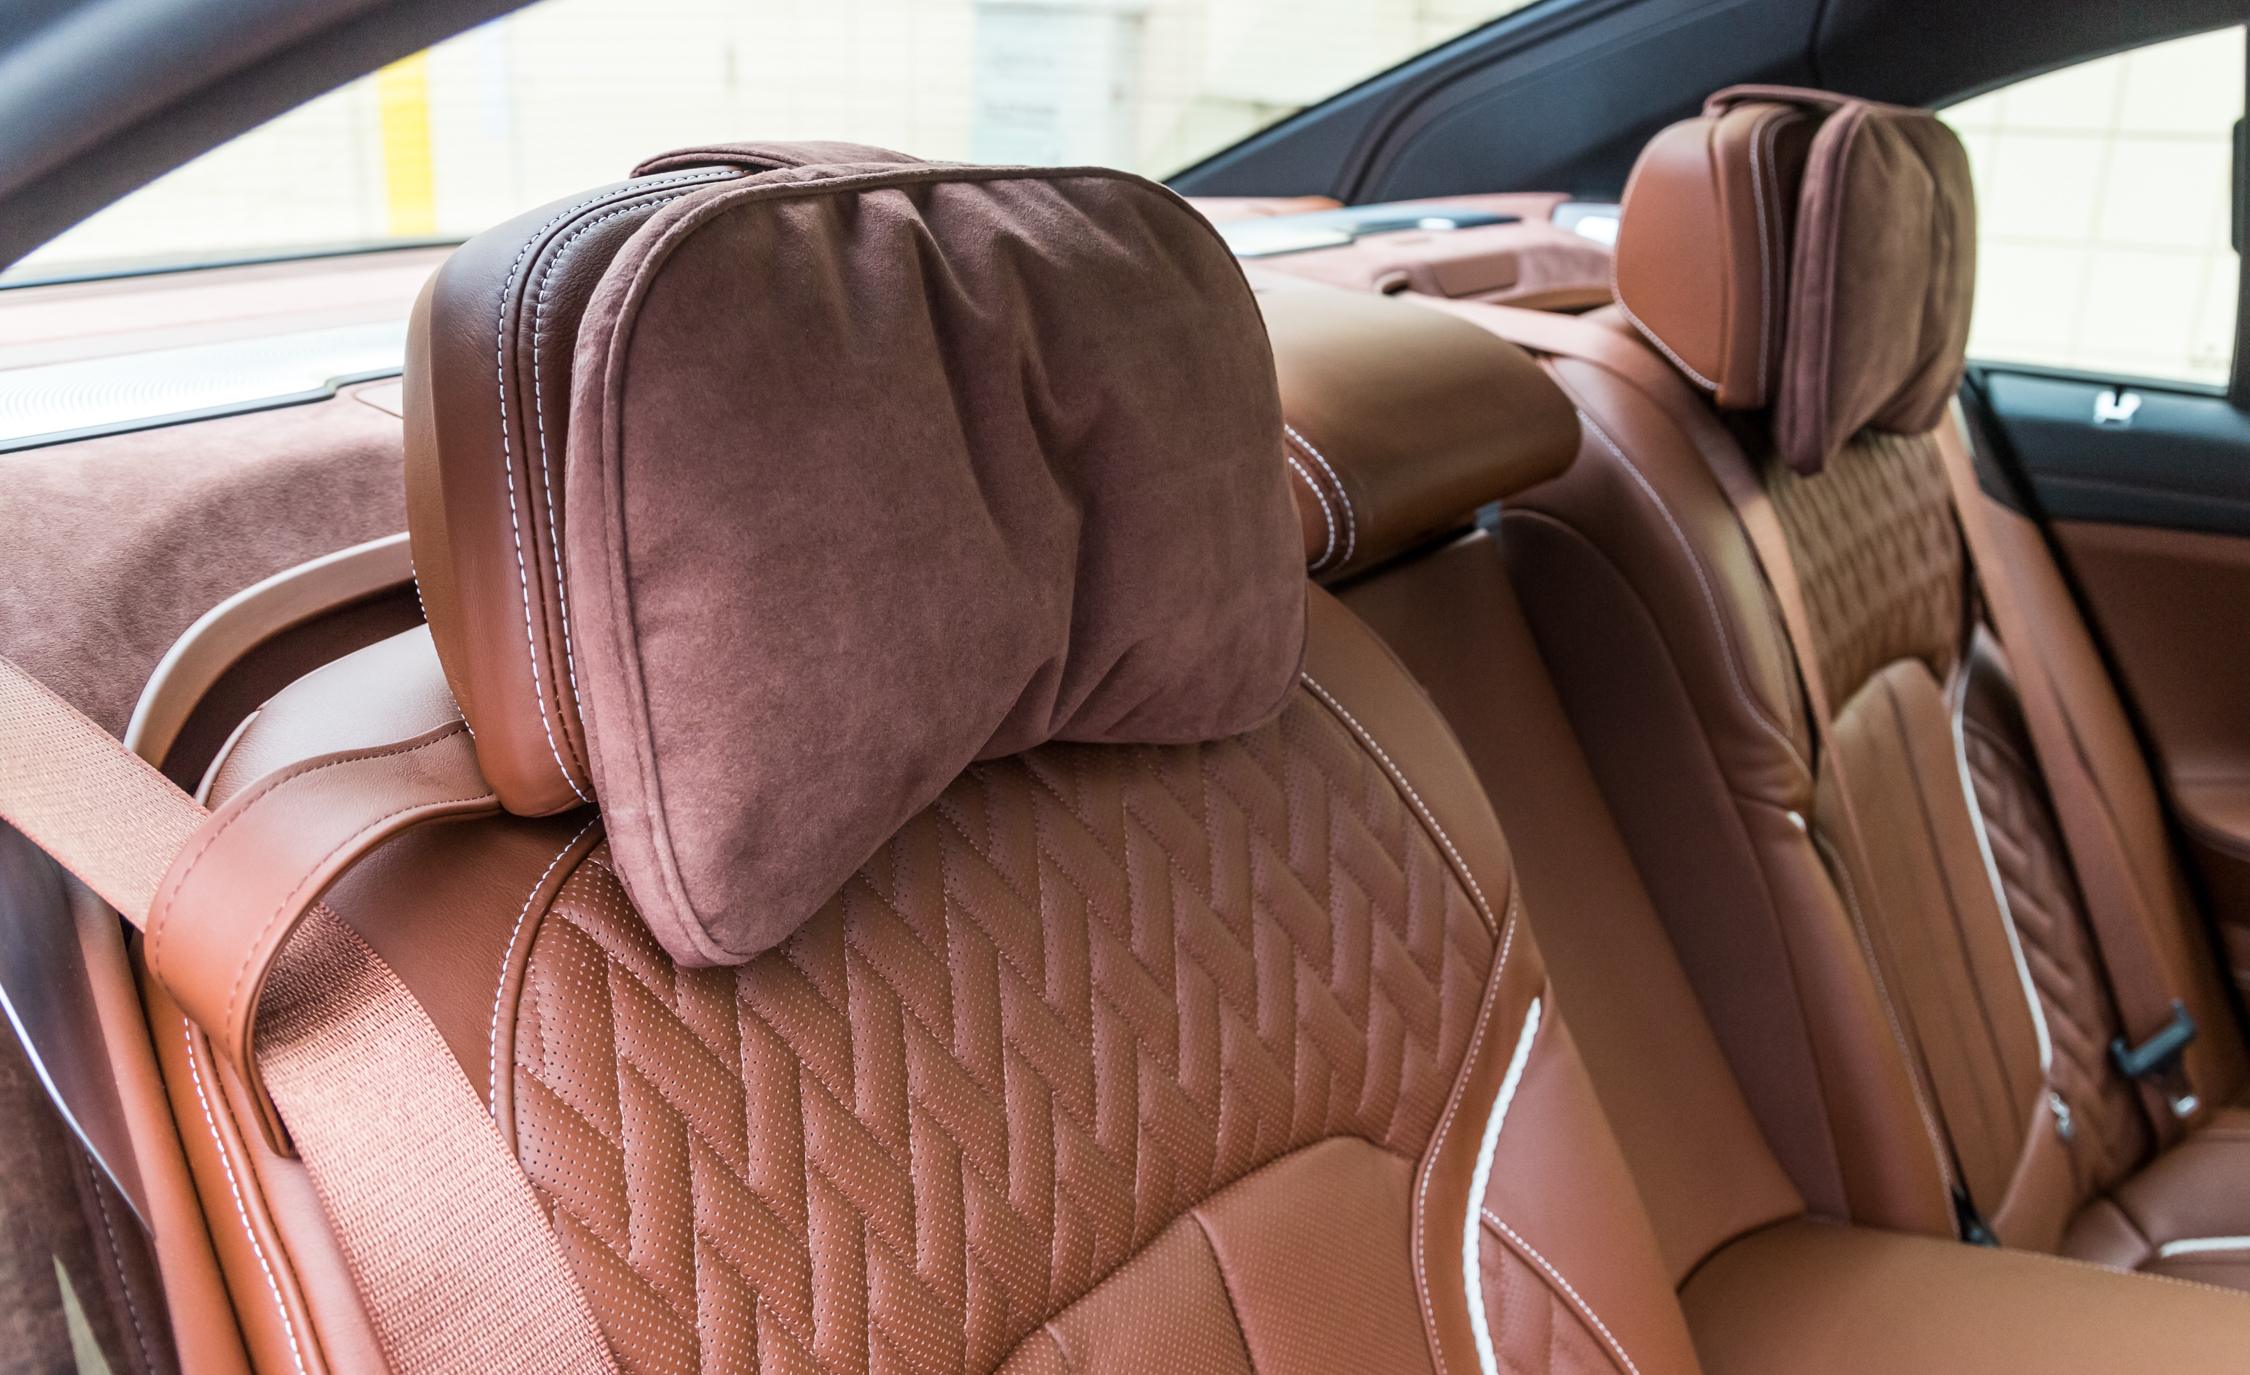 2017 BMW Alpina B7 XDrive Interior Seats Rear Headrest (Photo 39 of 45)